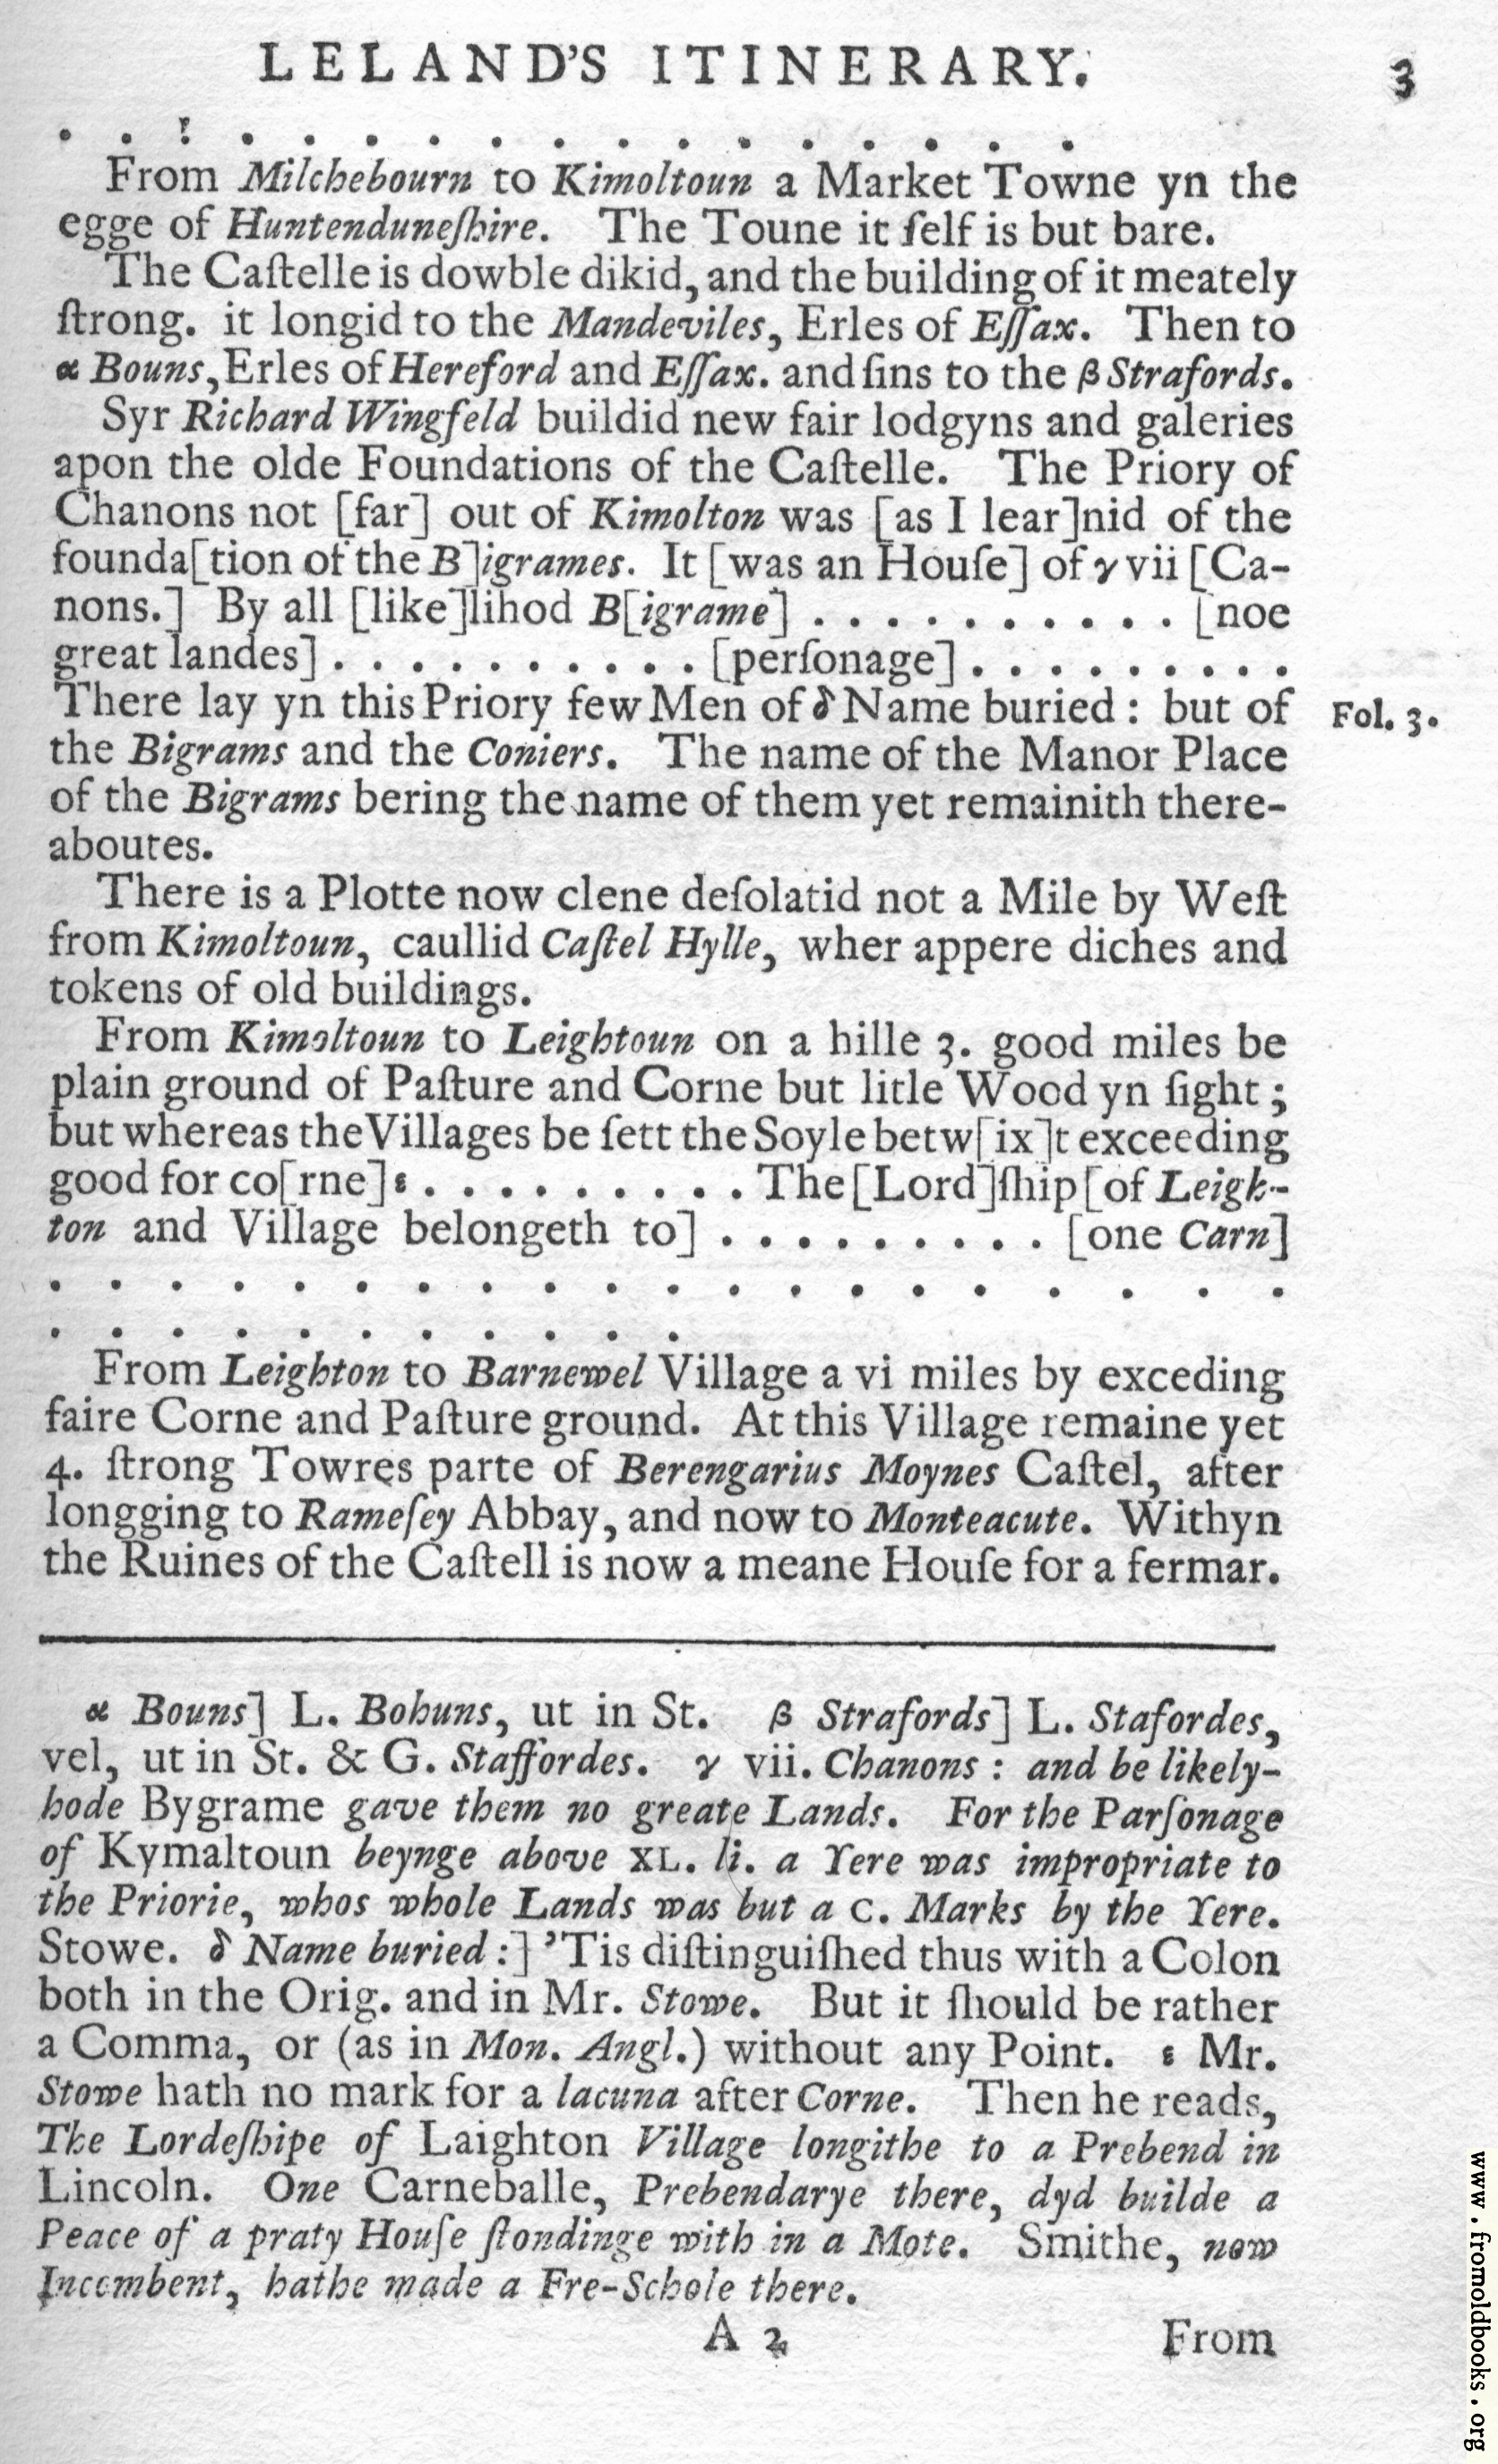 [Picture: Leland's Itinerary, Volume 1 Page 3]